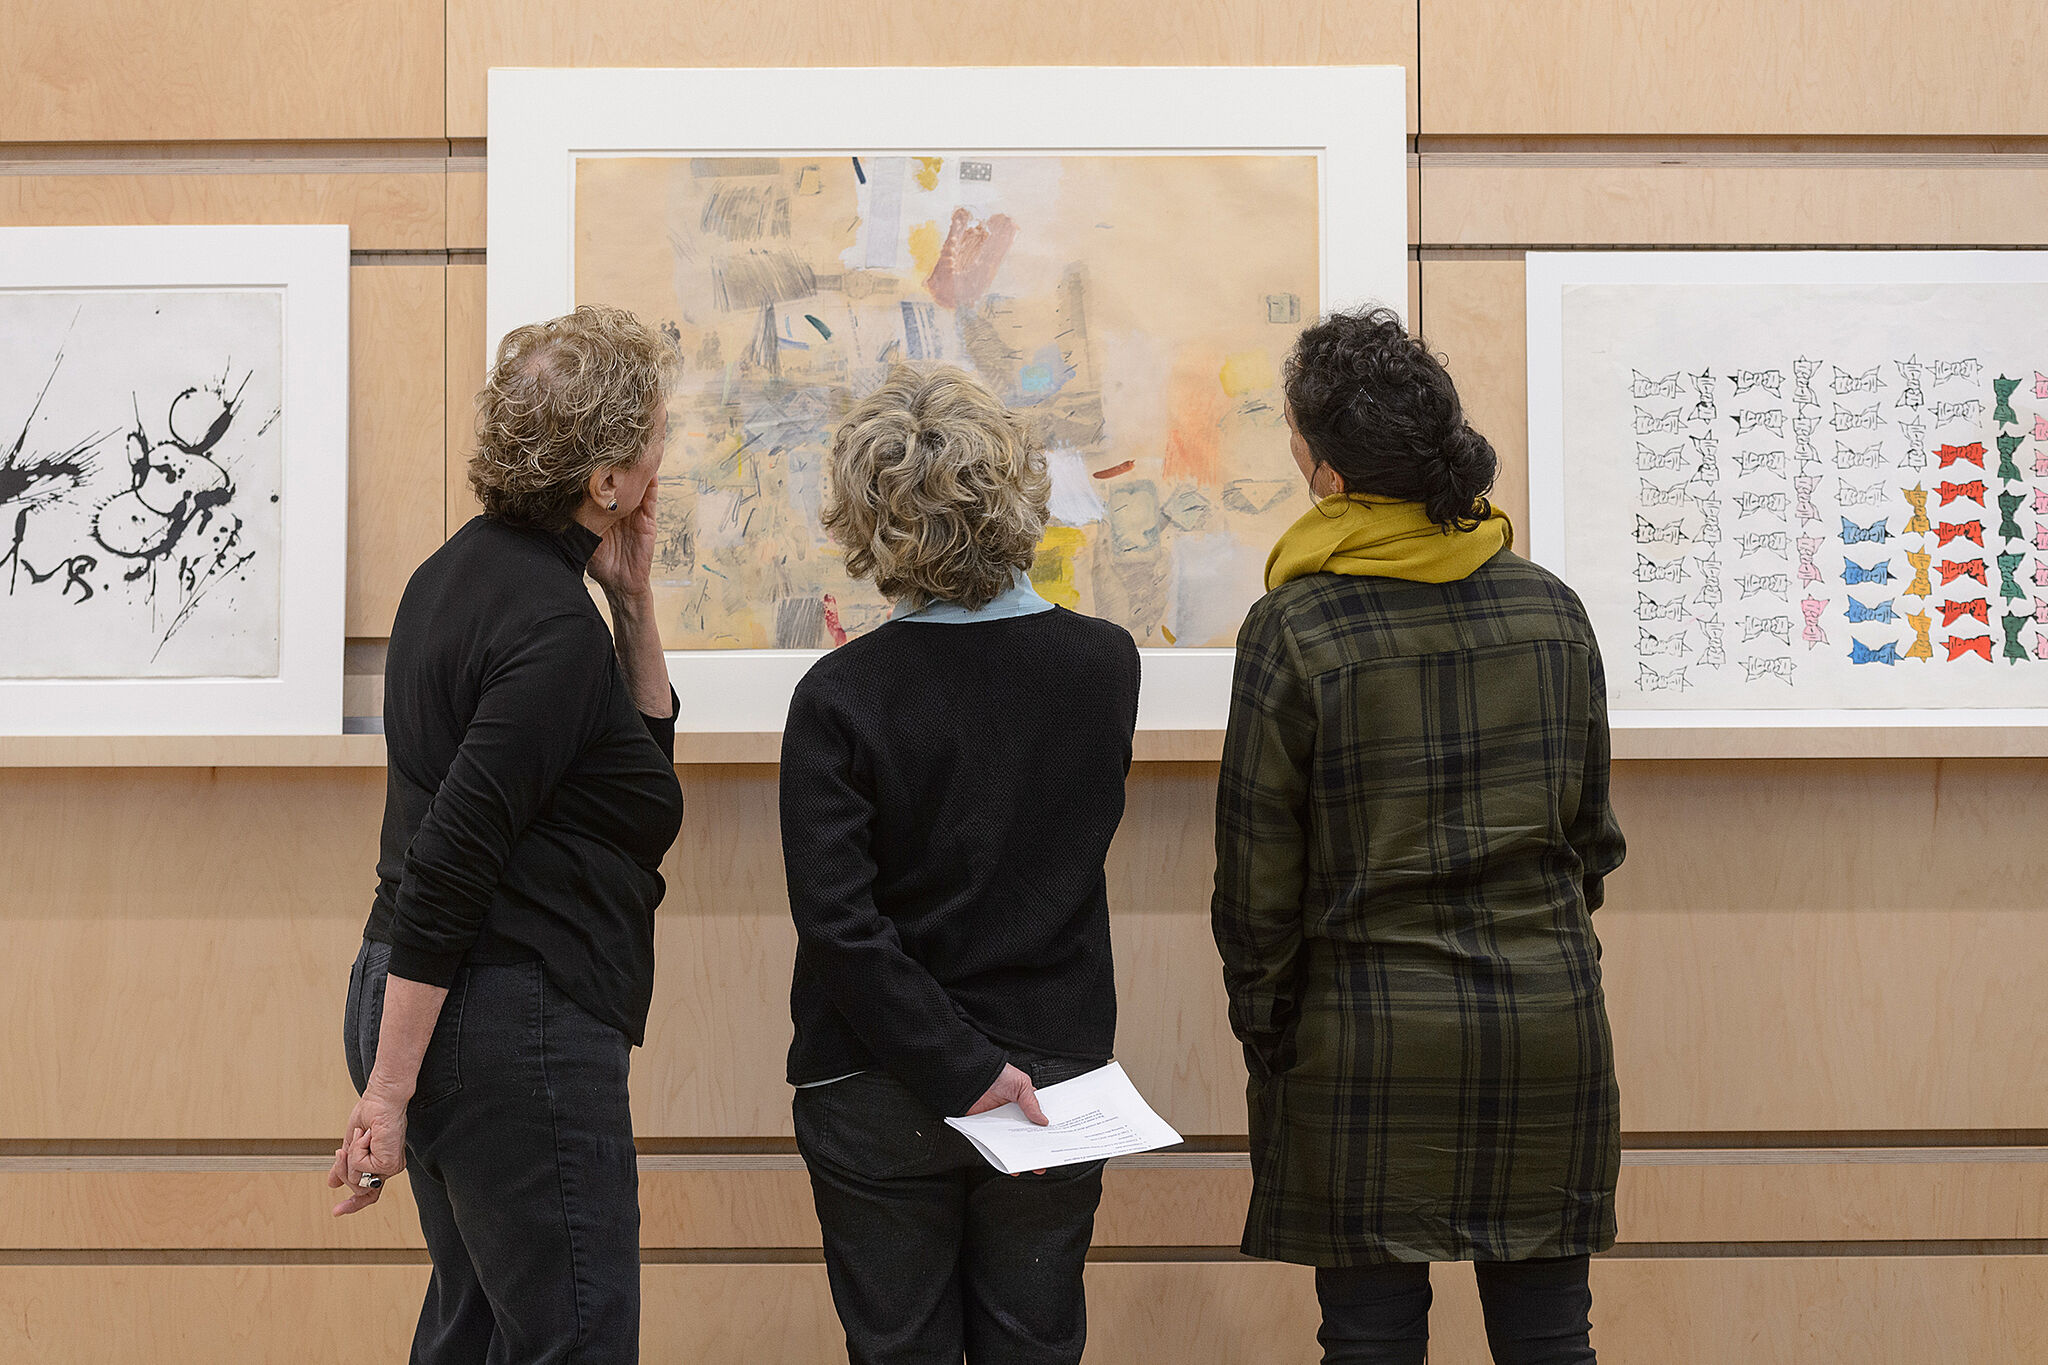 Three people examine an artwork, which hangs on a wall.